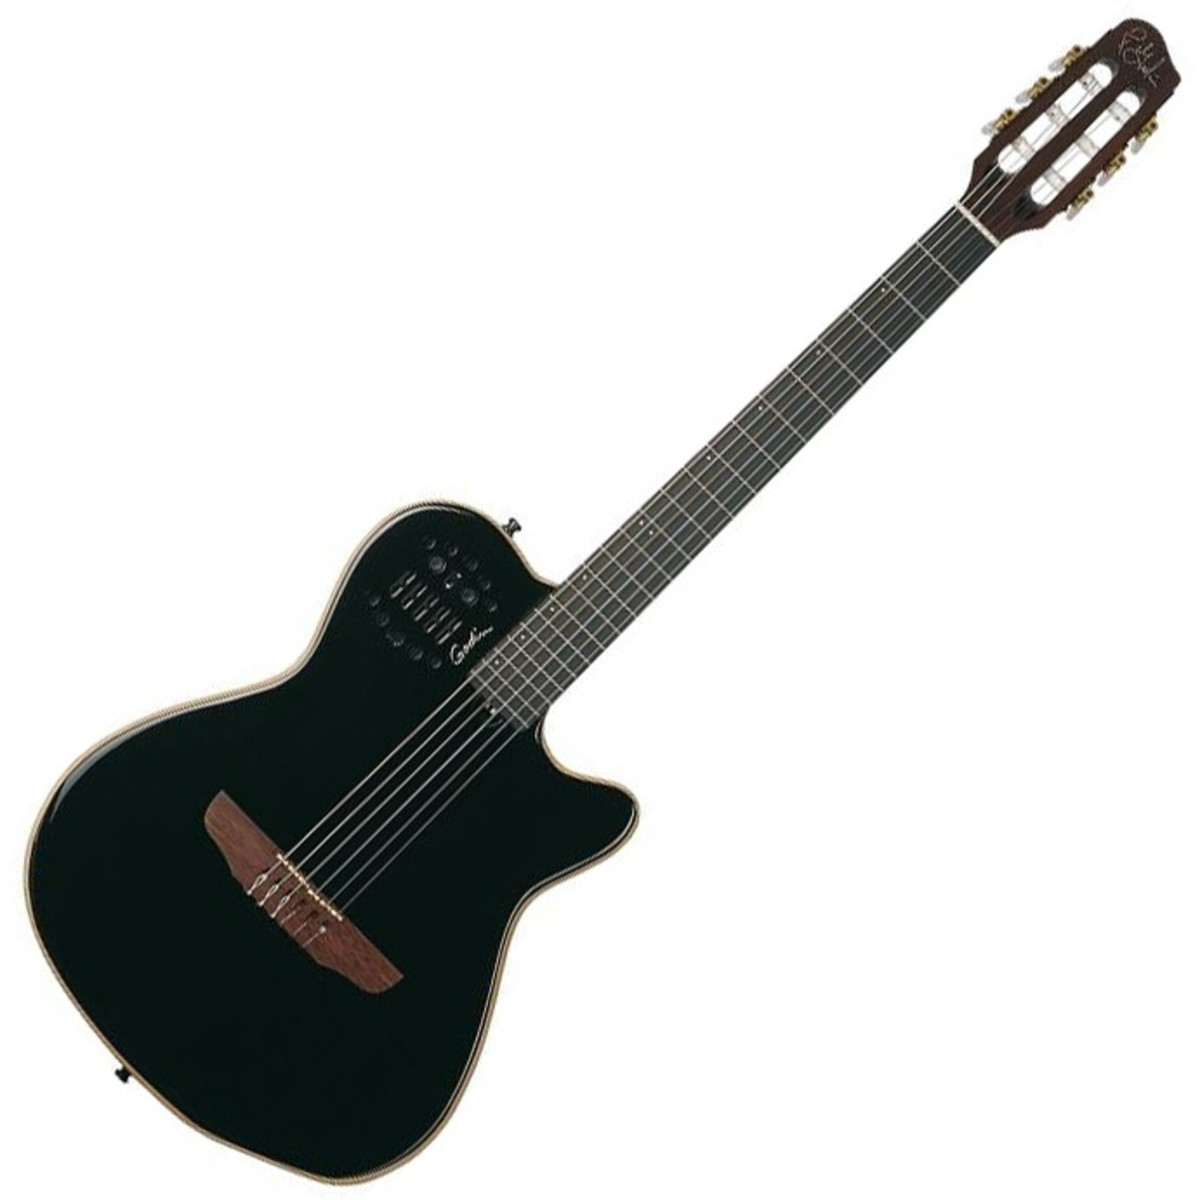 godin acs sa nylon acoustic guitar with synth access black b stock at gear4music. Black Bedroom Furniture Sets. Home Design Ideas